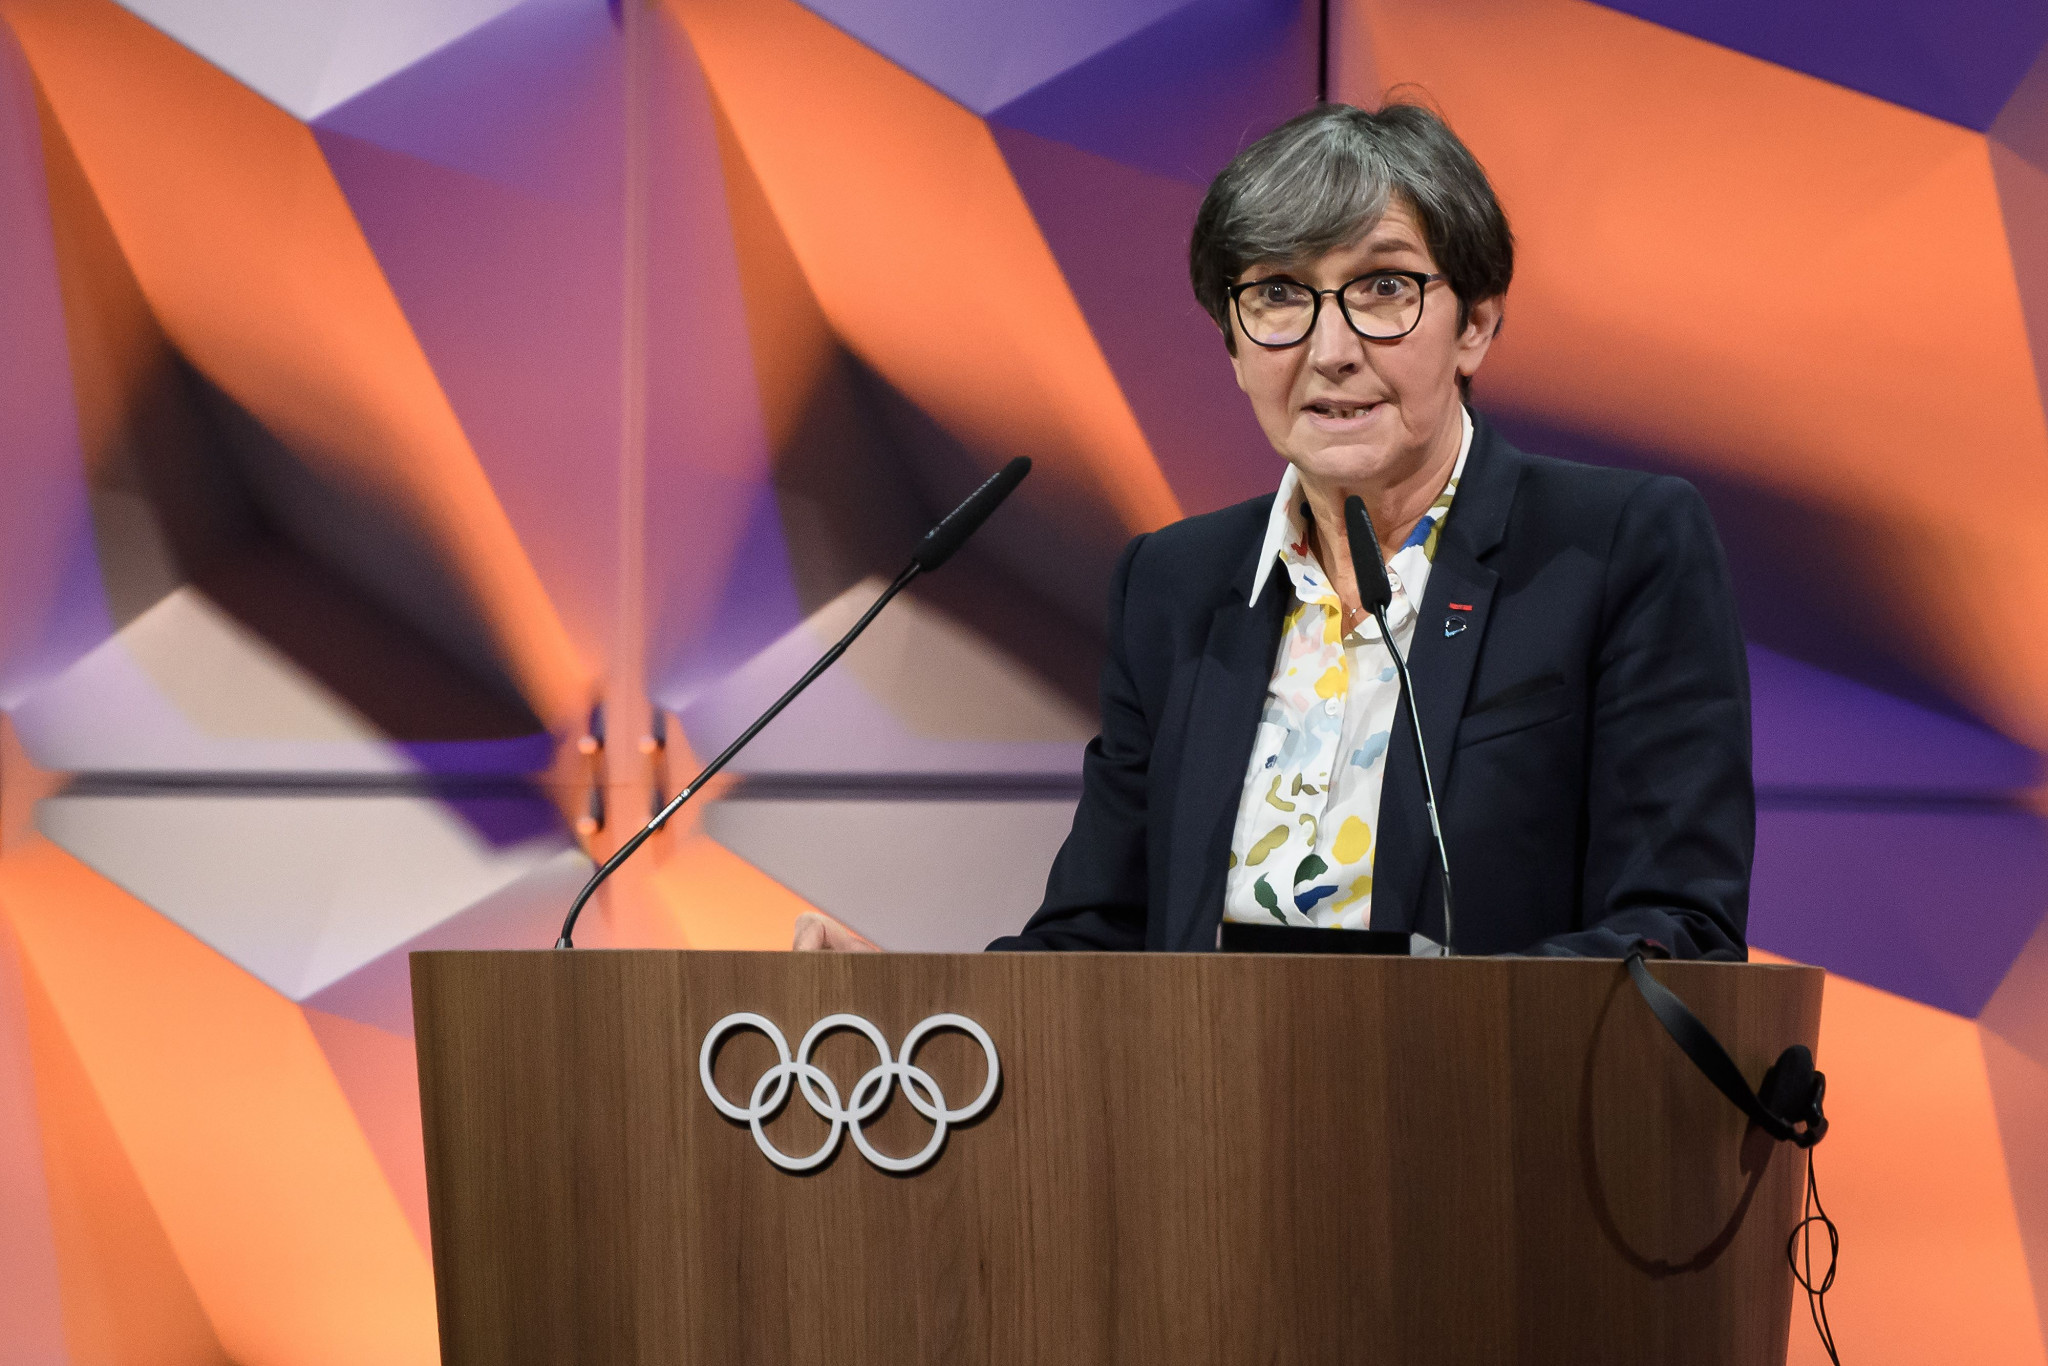 ITA chair Valerie Fourneyron gave an update on testing plans for Lausanne 2020 and Tokyo 2020 ©IOC